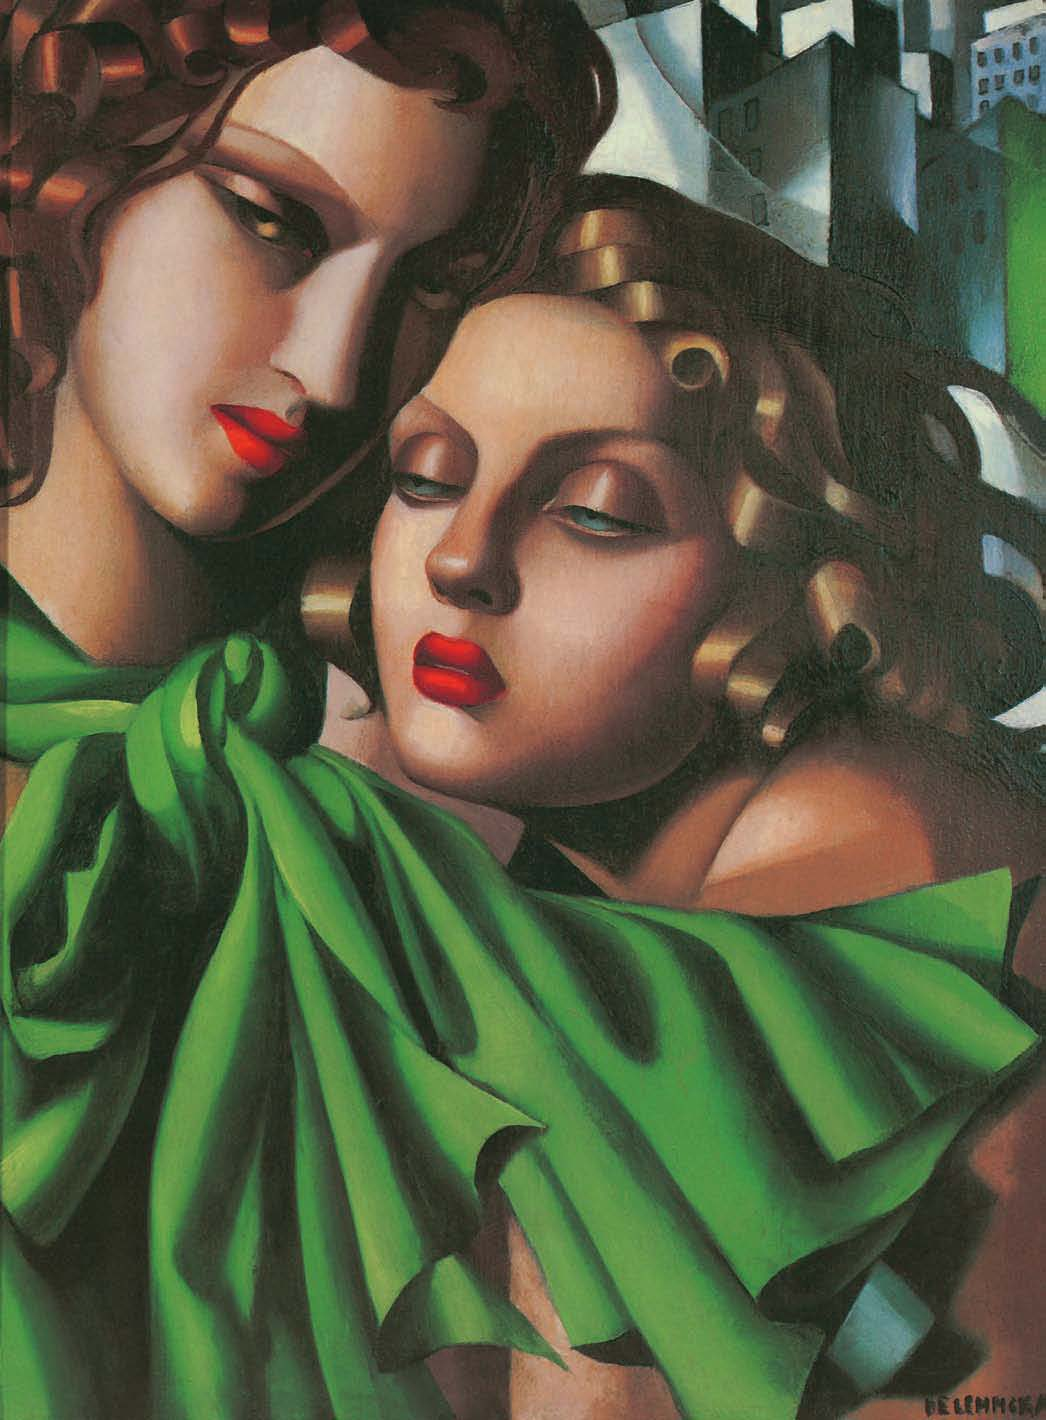 The Girls, c. 1930., Lempicka, Patrick Bade